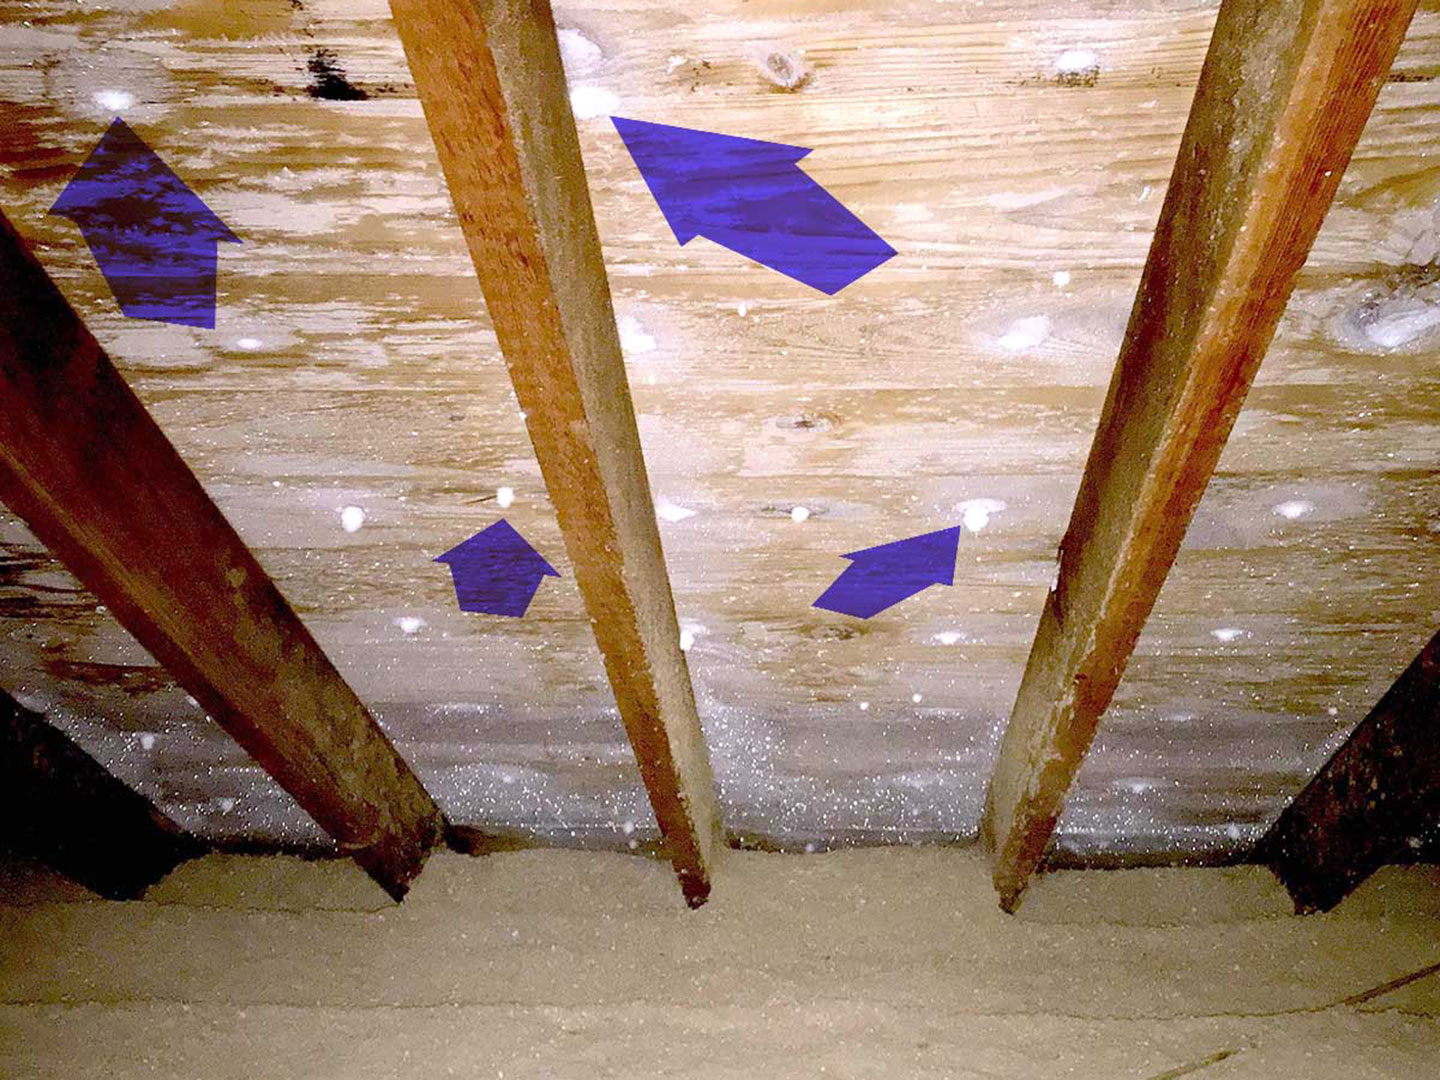 Frost in attic from heat escaping home.